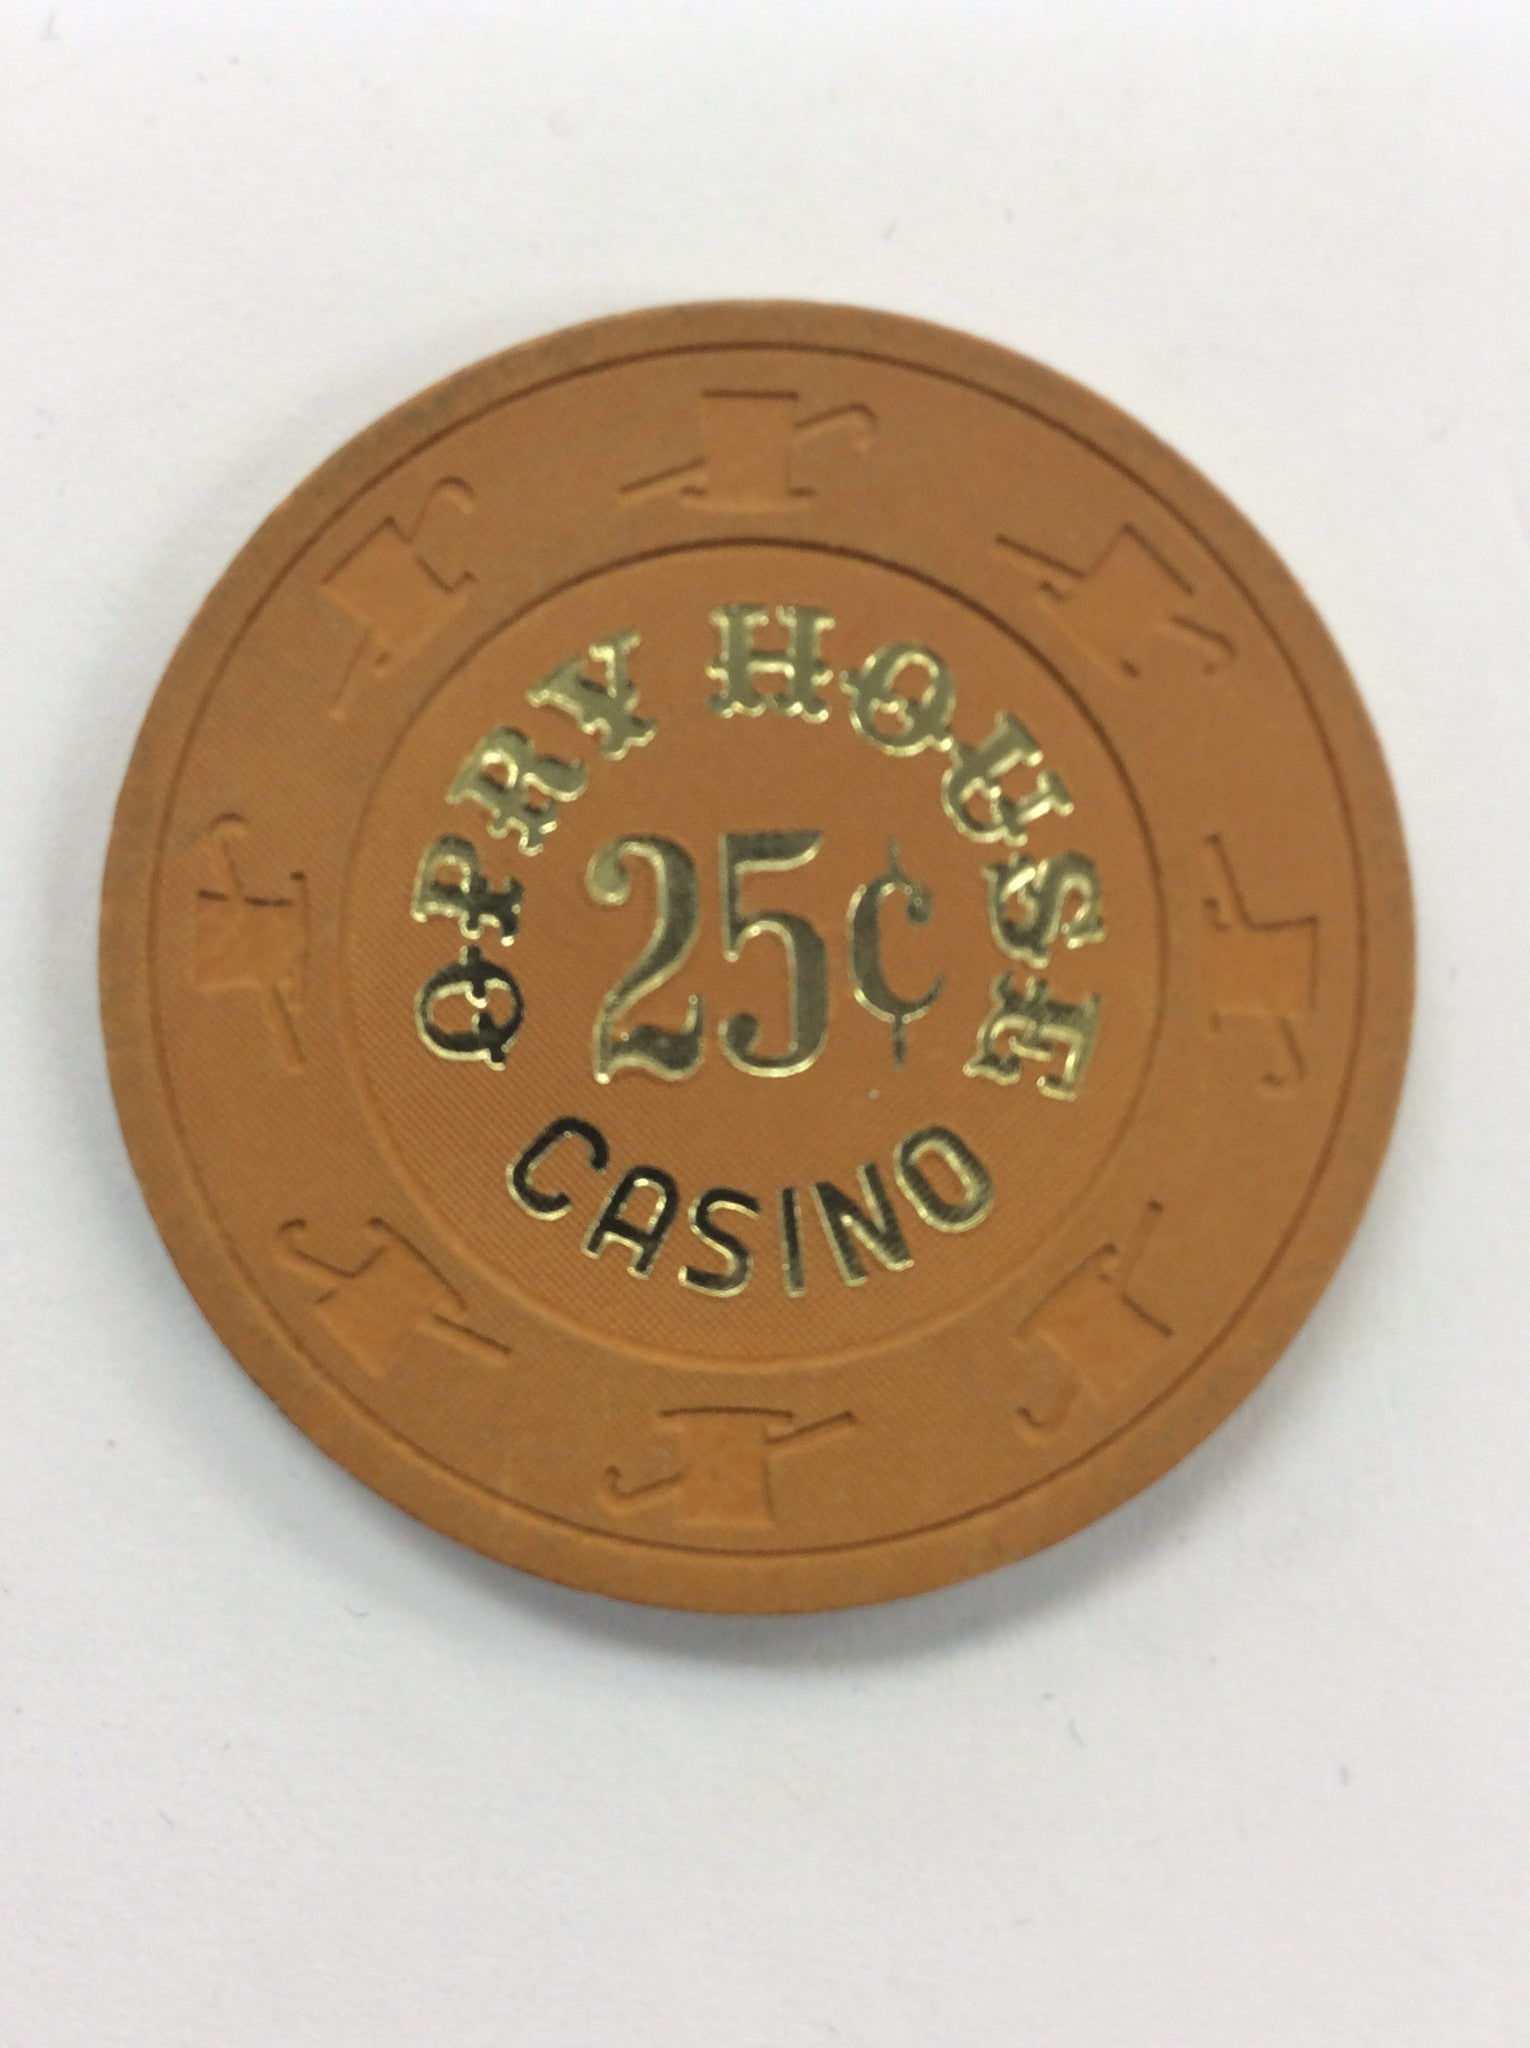 Opry House Casino 25cent (orchard) chip - Spinettis Gaming